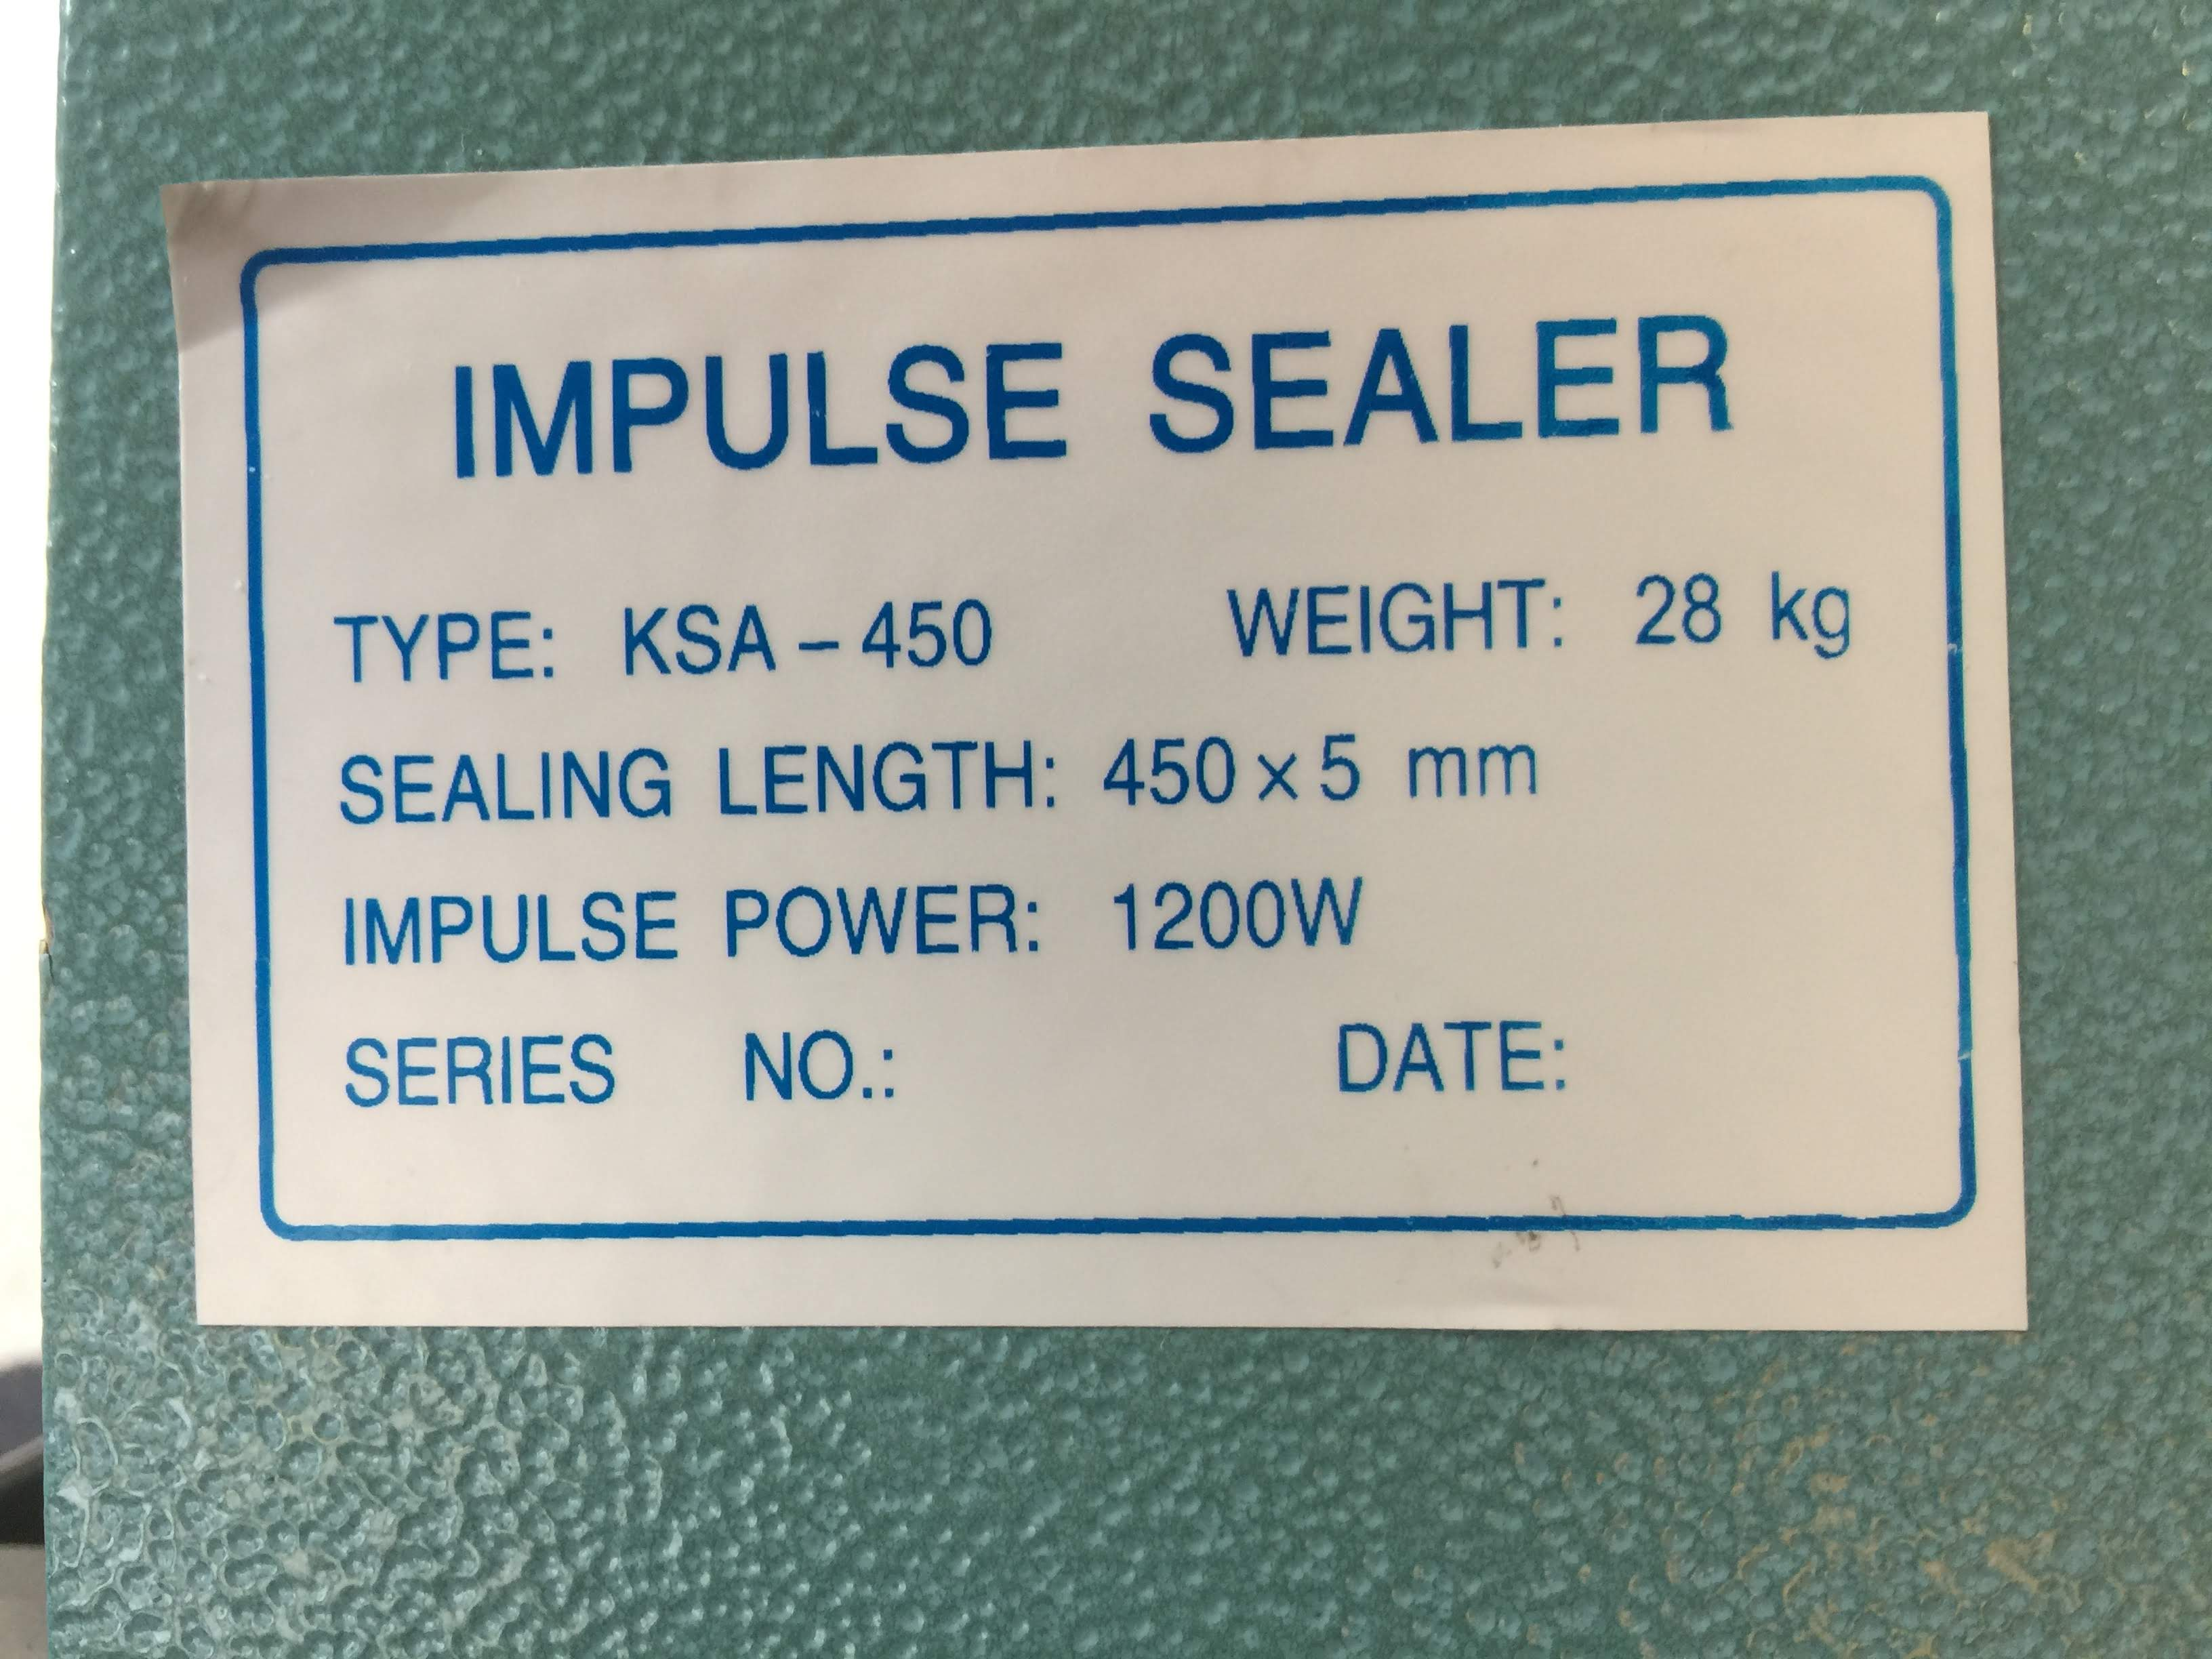 Impulse Sealer Product Information